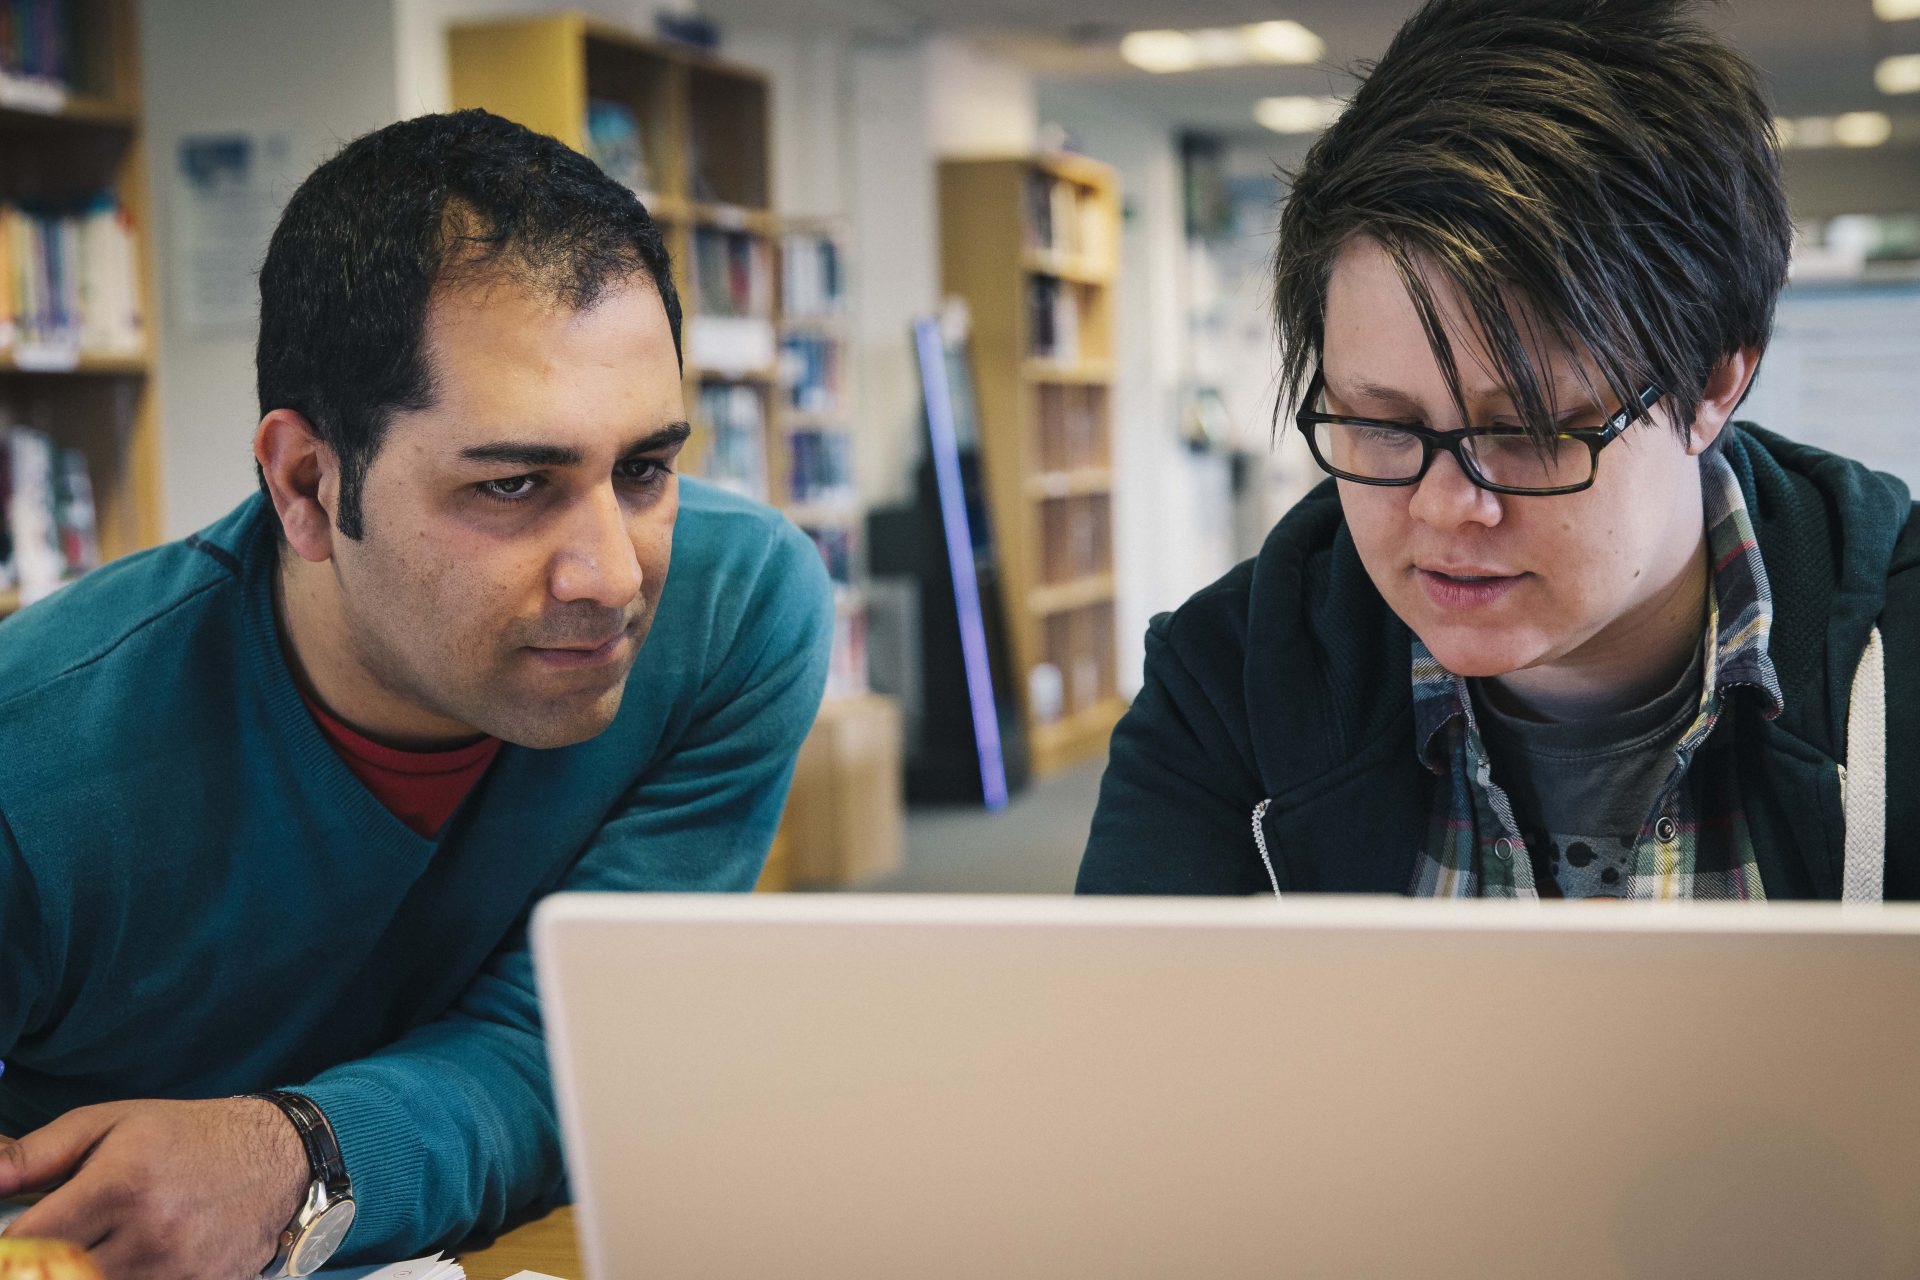 Hirad Babakhani and Anna Nicholls work on a laptop in Ashley Down Library